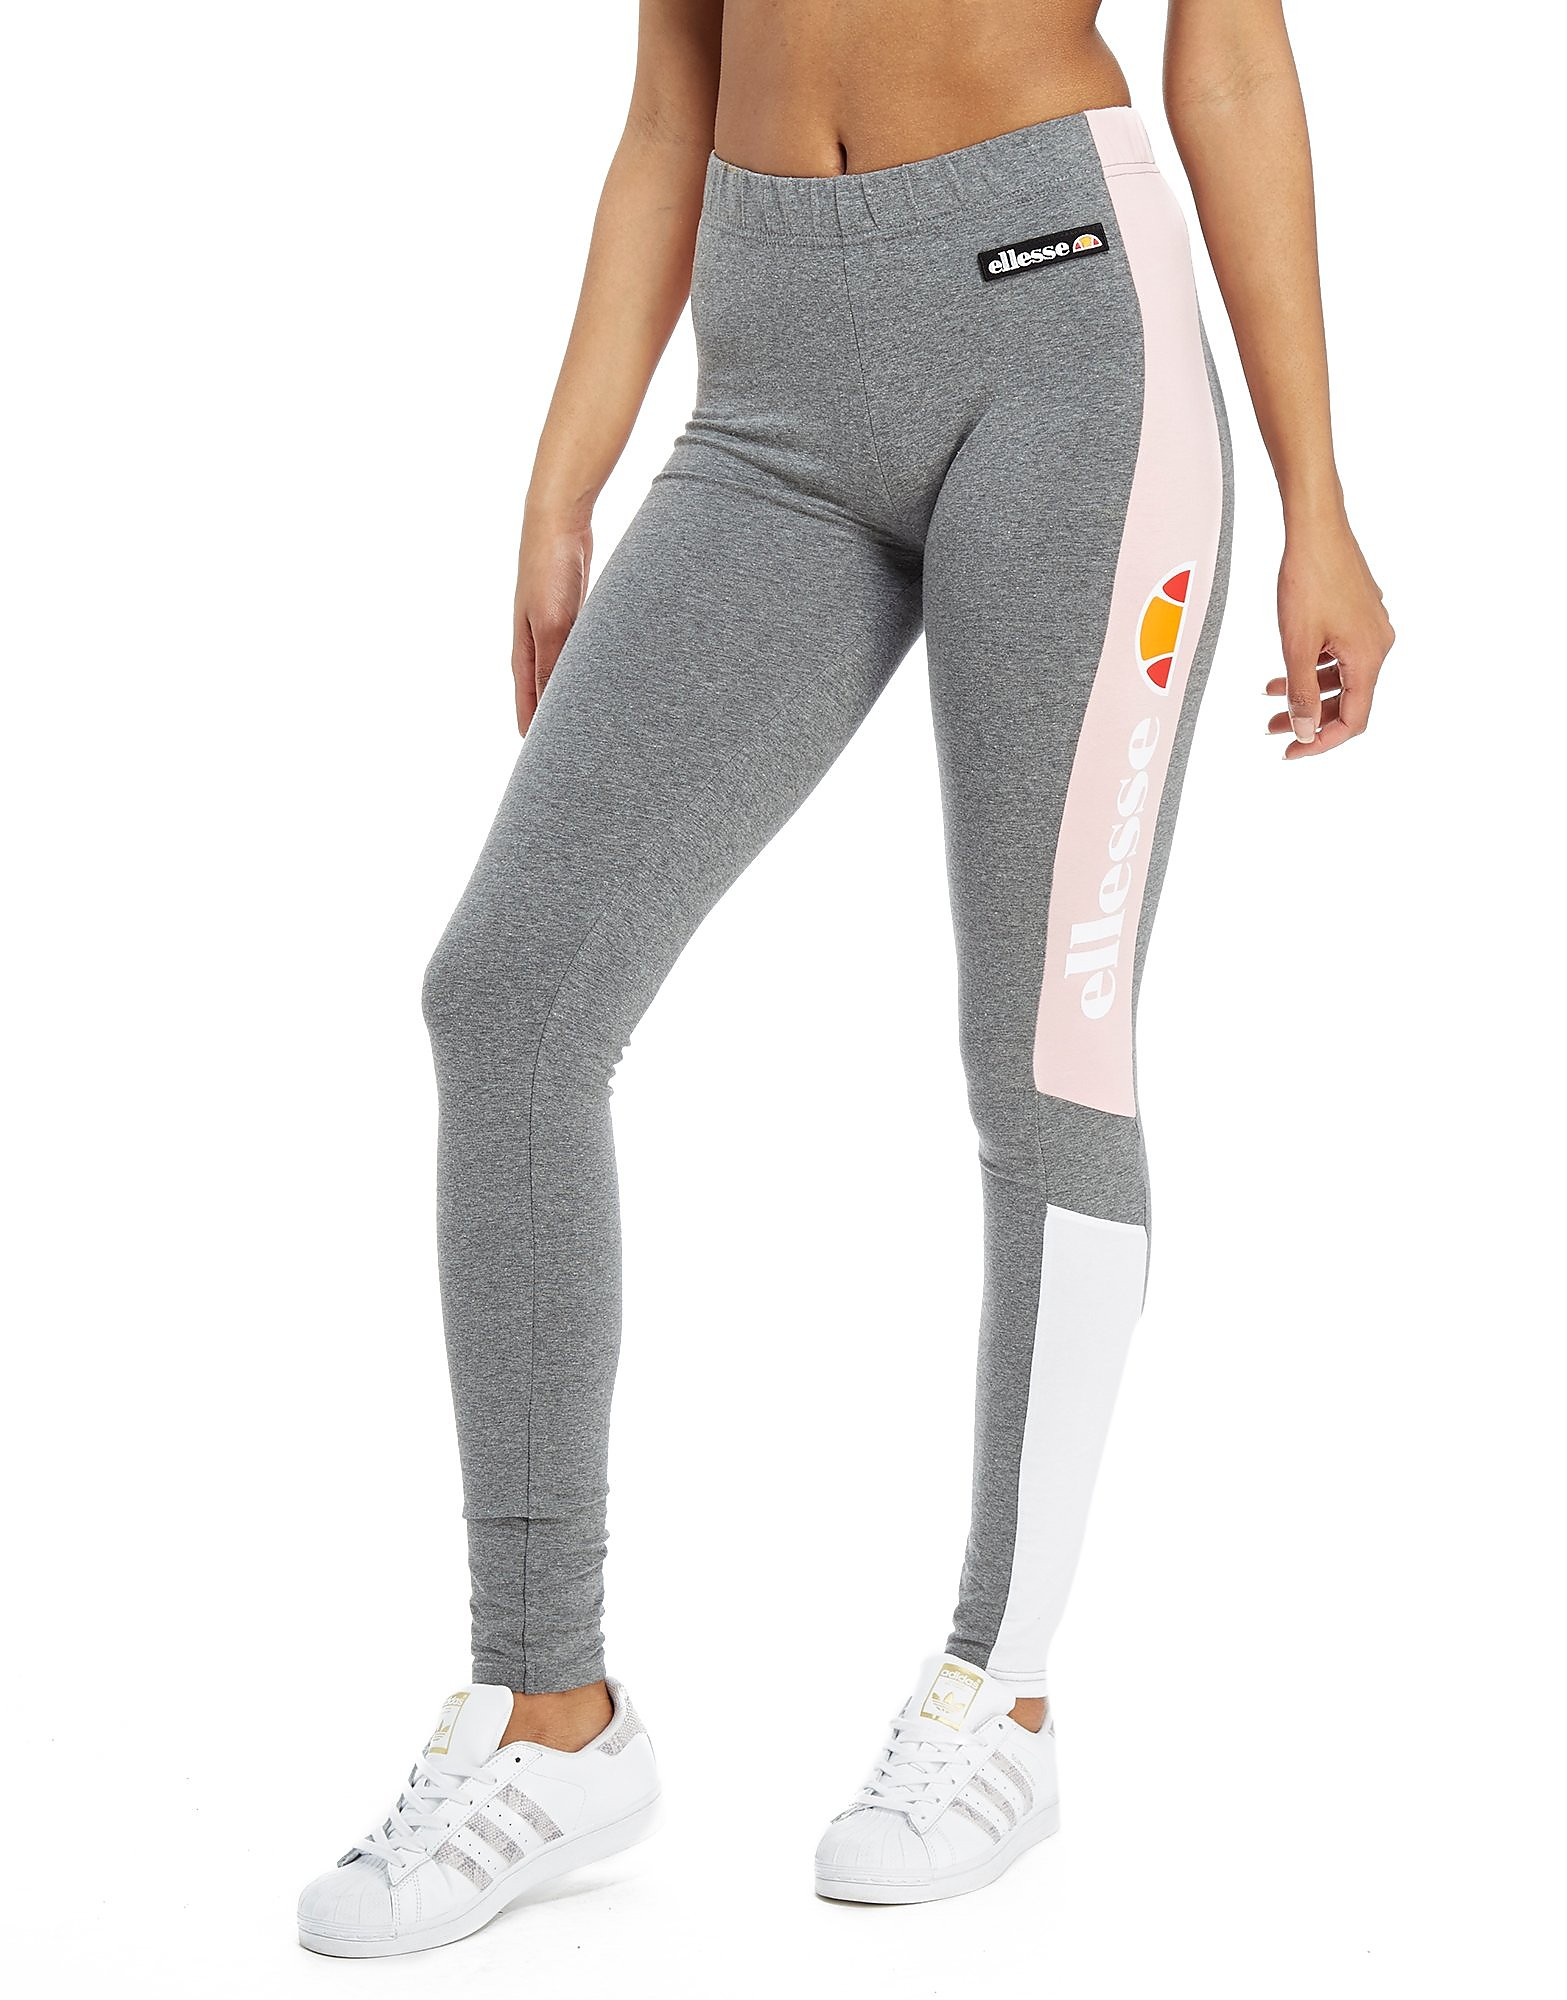 Ellesse Leggings Dames